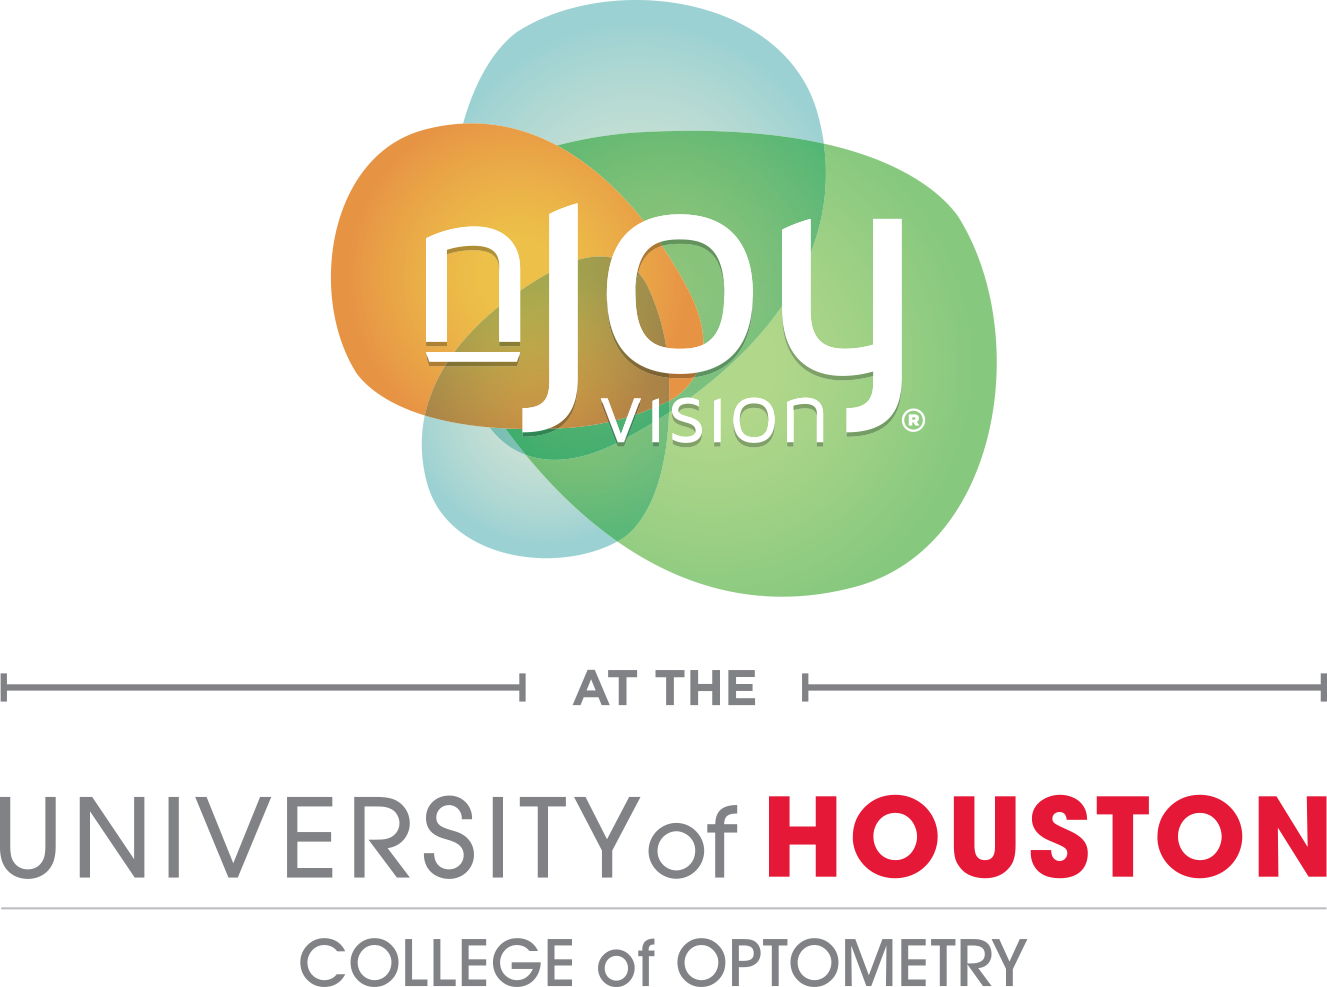 optometry research papers One of the prime aims of the college is the advancement for the public benefit of the study of and optometry research paper research into optometry.